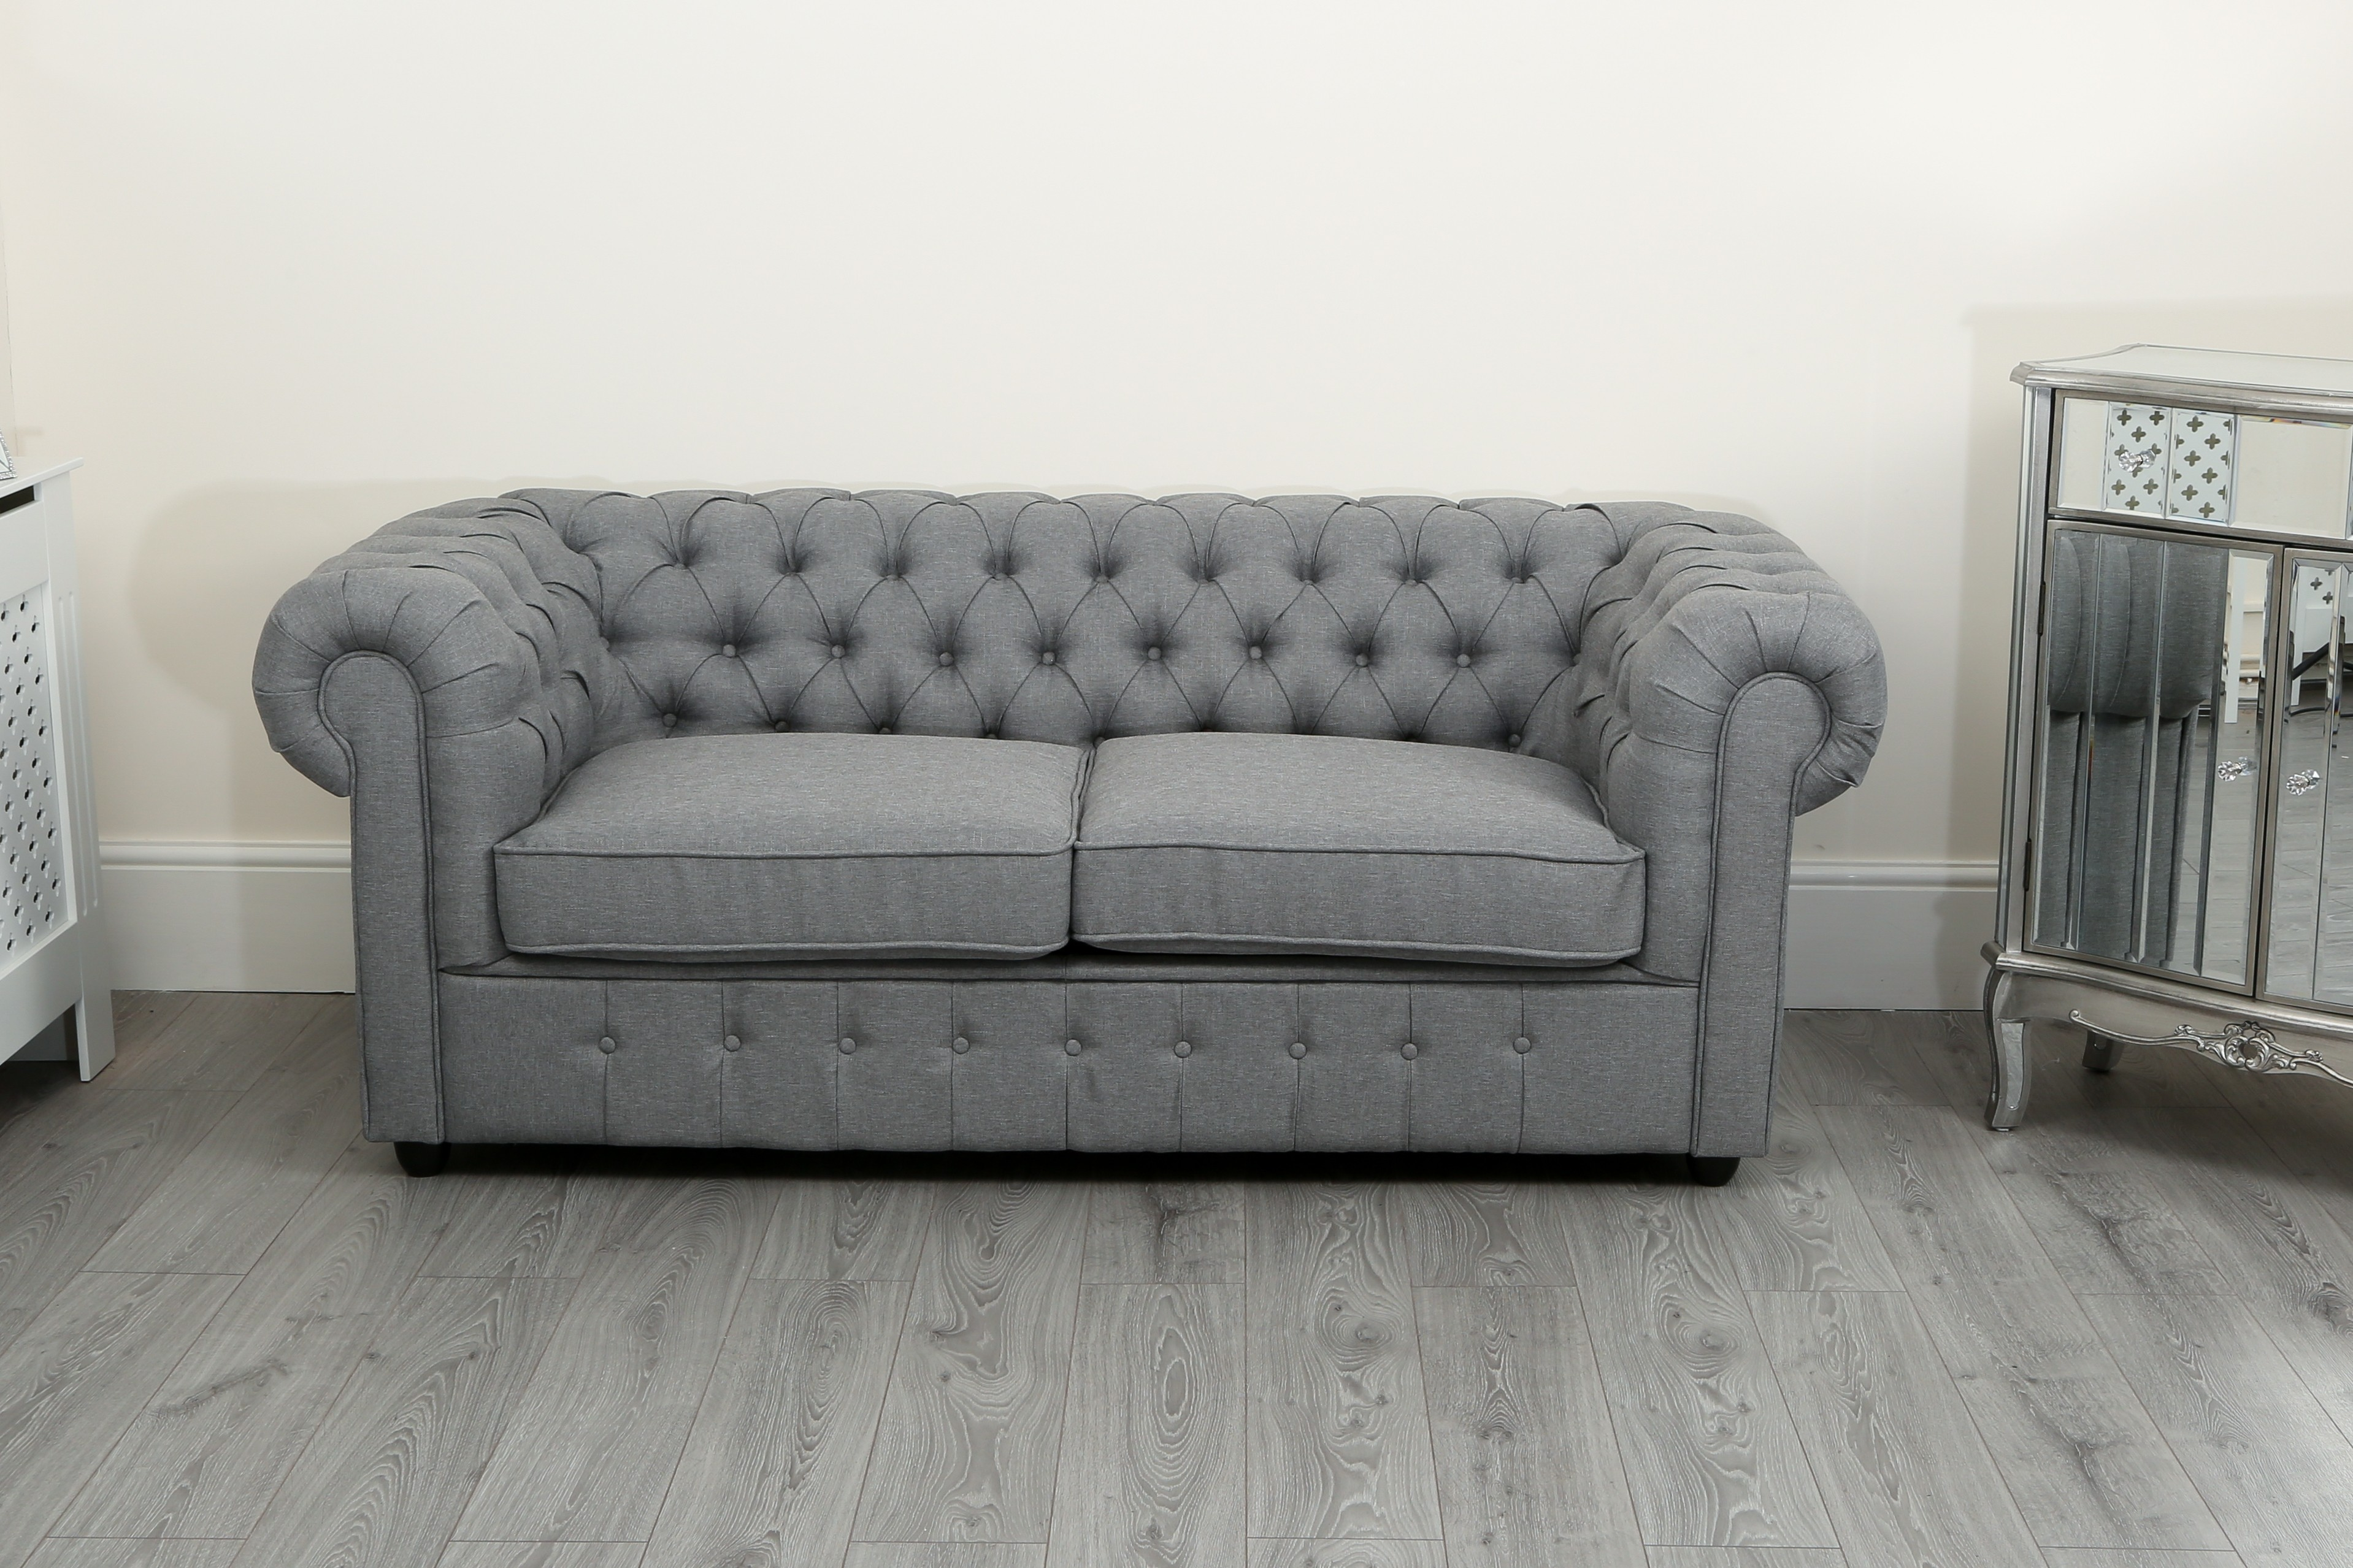 Empire Chesterfield Grey Linen 3 Seater Sofa Bed Abreo